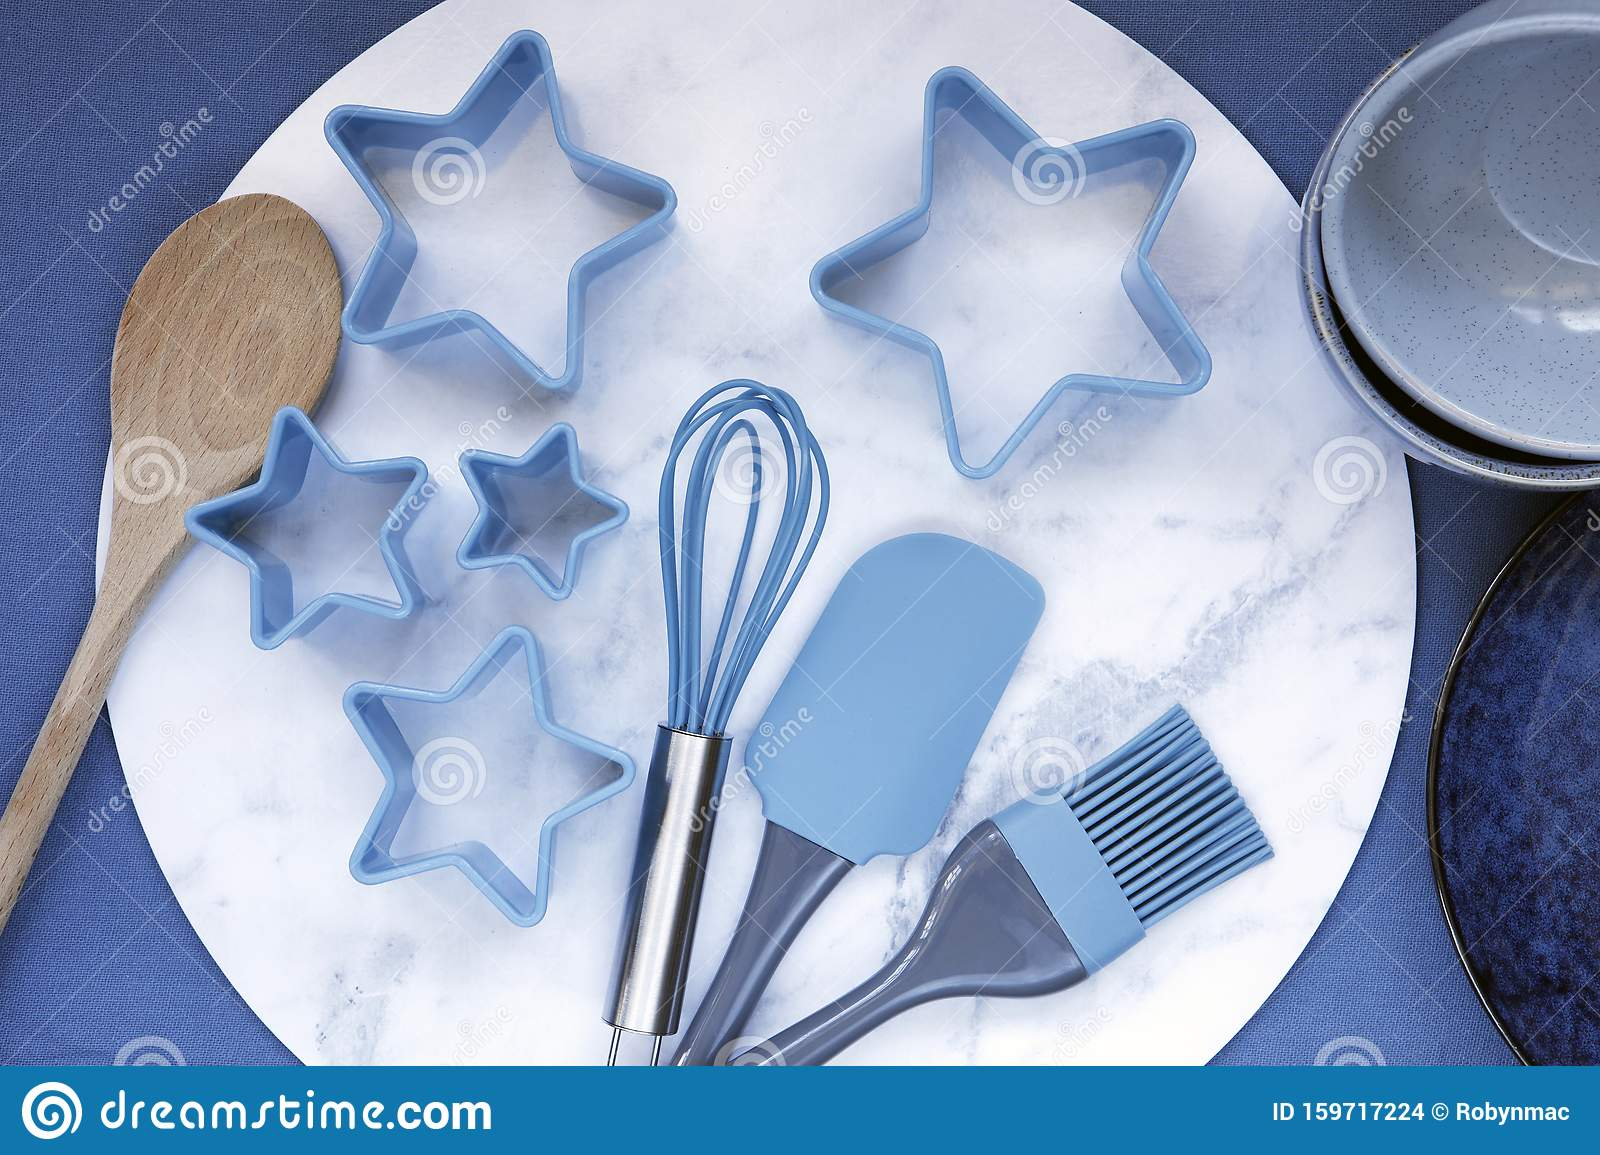 Baking Utensils Top View On Blue Background Stock Photo